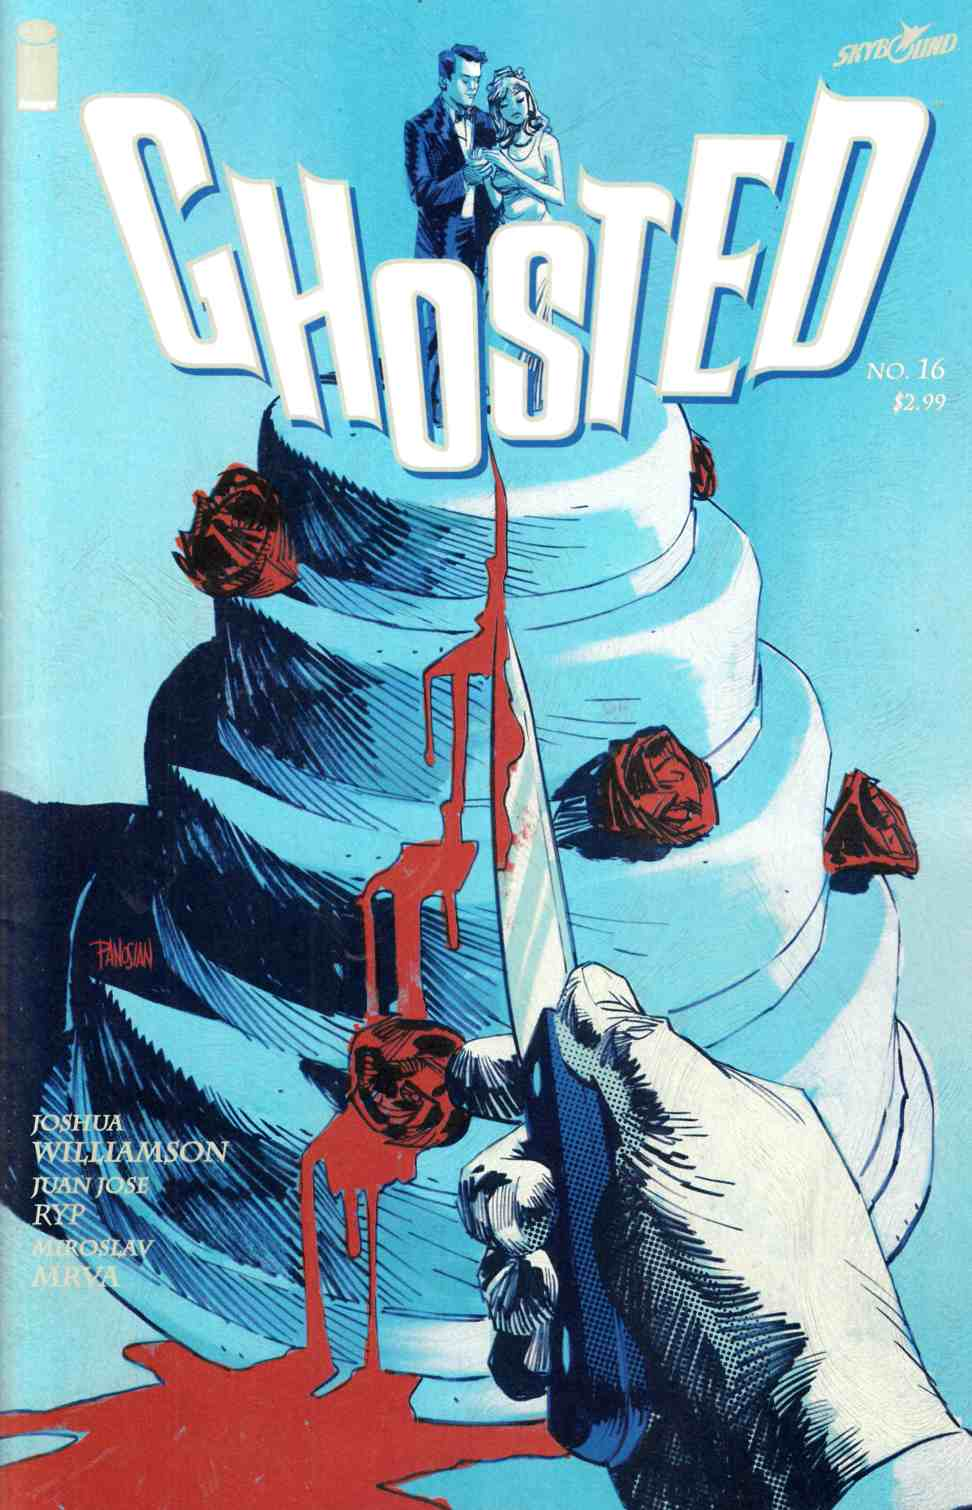 Ghosted #16 [Image Comic] THUMBNAIL